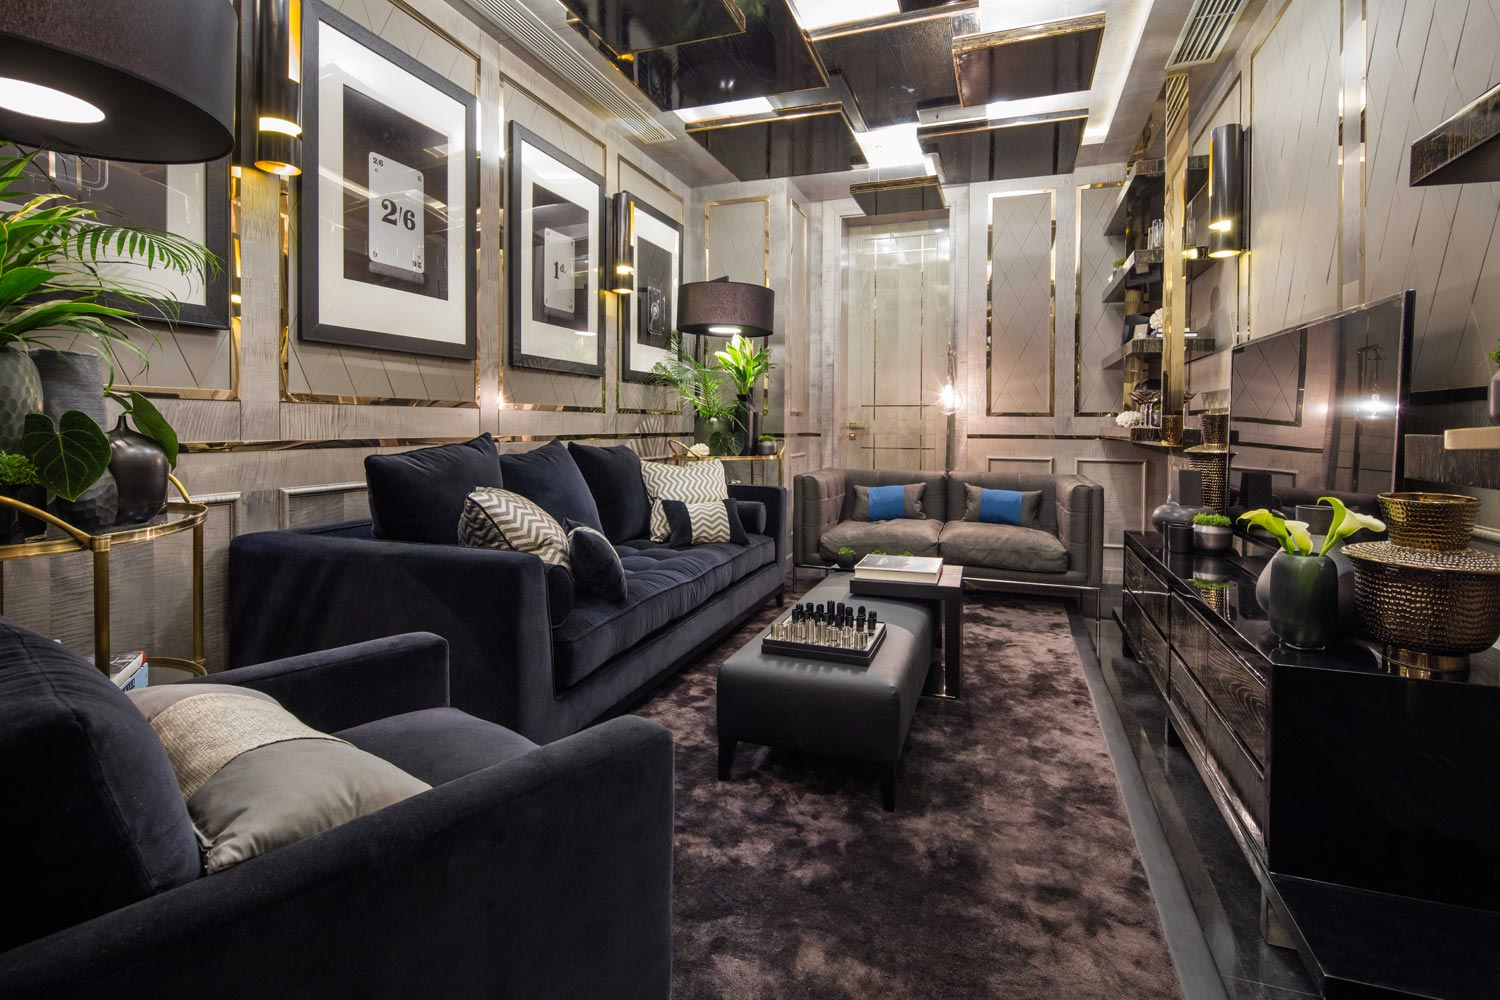 London Best Interior Designers Kelly Hoppen best interior designers Best interior designers based in London London Best Interior Designers Kelly Hoppen